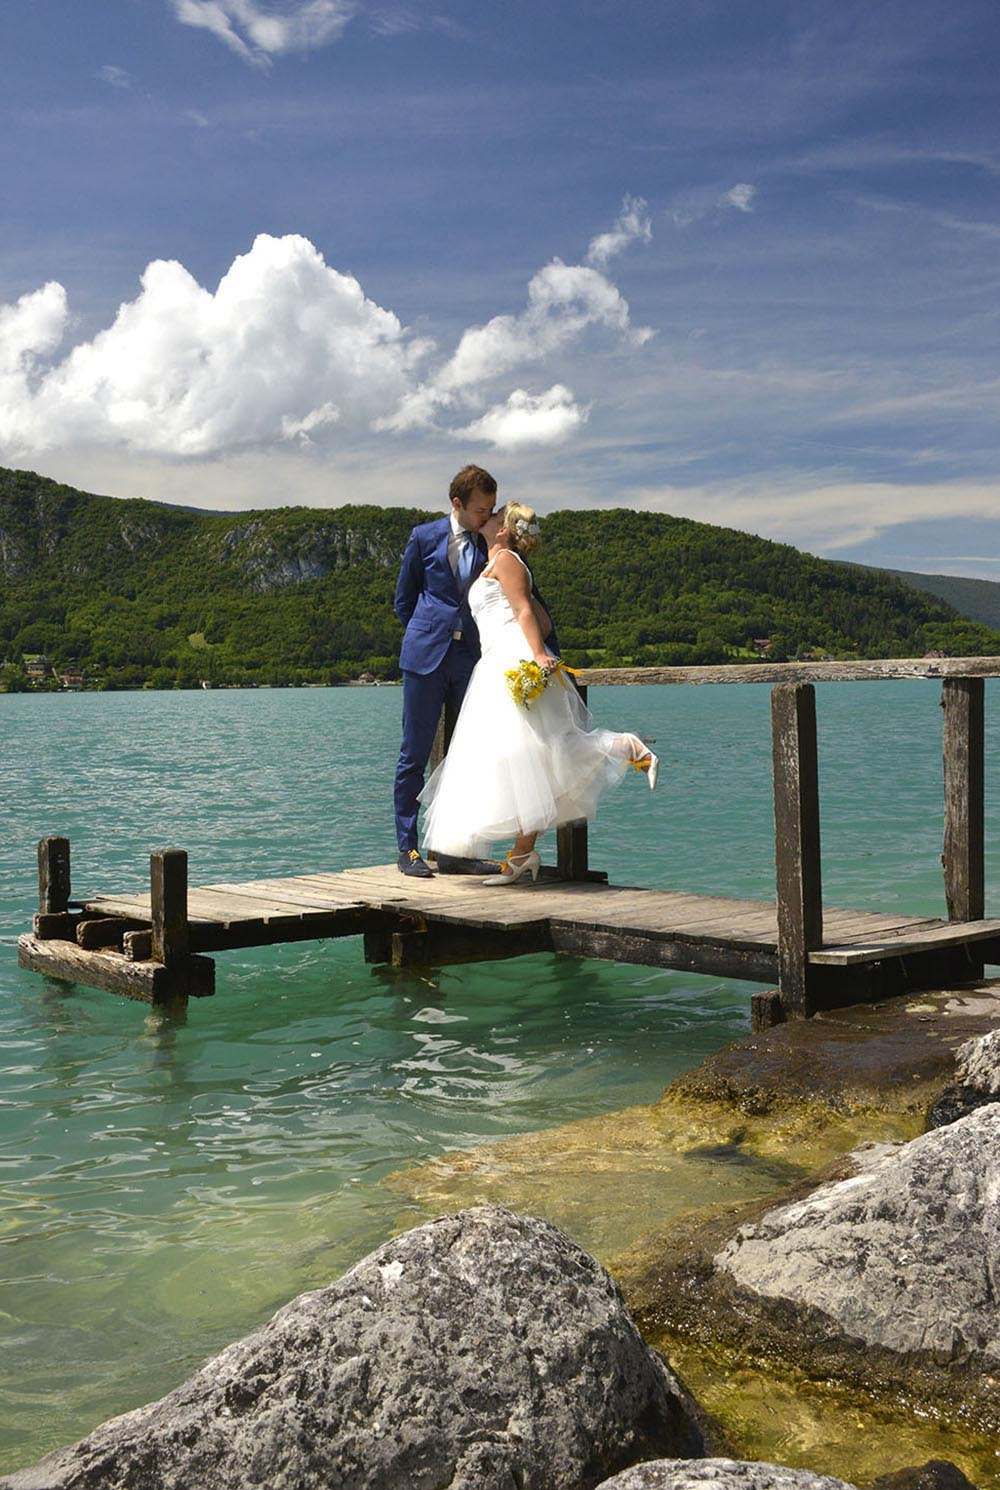 Wedding couple kissing on pontoon, Talloires, Lake Annecy, France